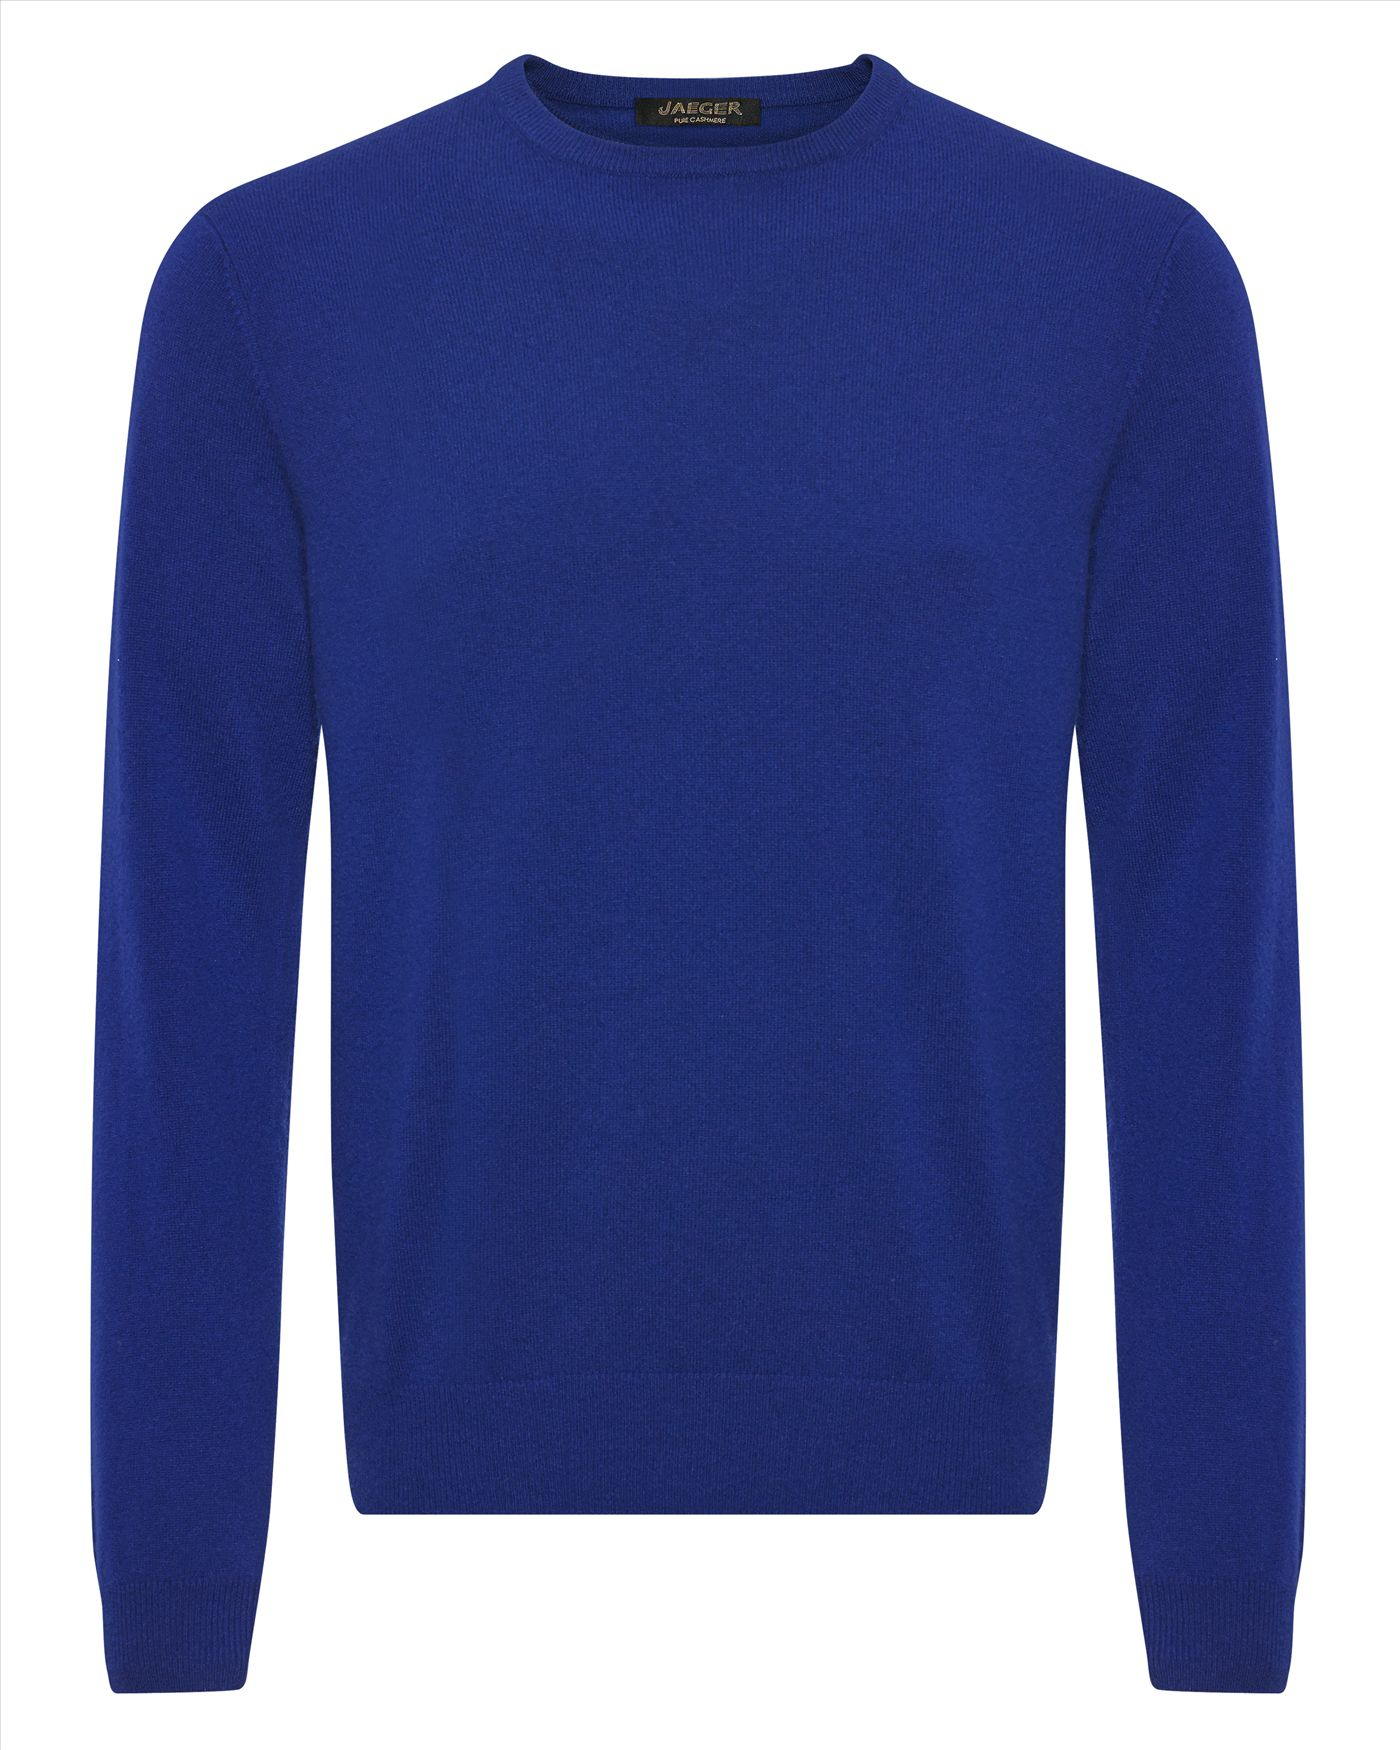 Cashmere Sweaters: Free Shipping on orders over $45 at needloanbadcredit.cf - Your Online Women's Sweaters Store! Get 5% in rewards with Club O!